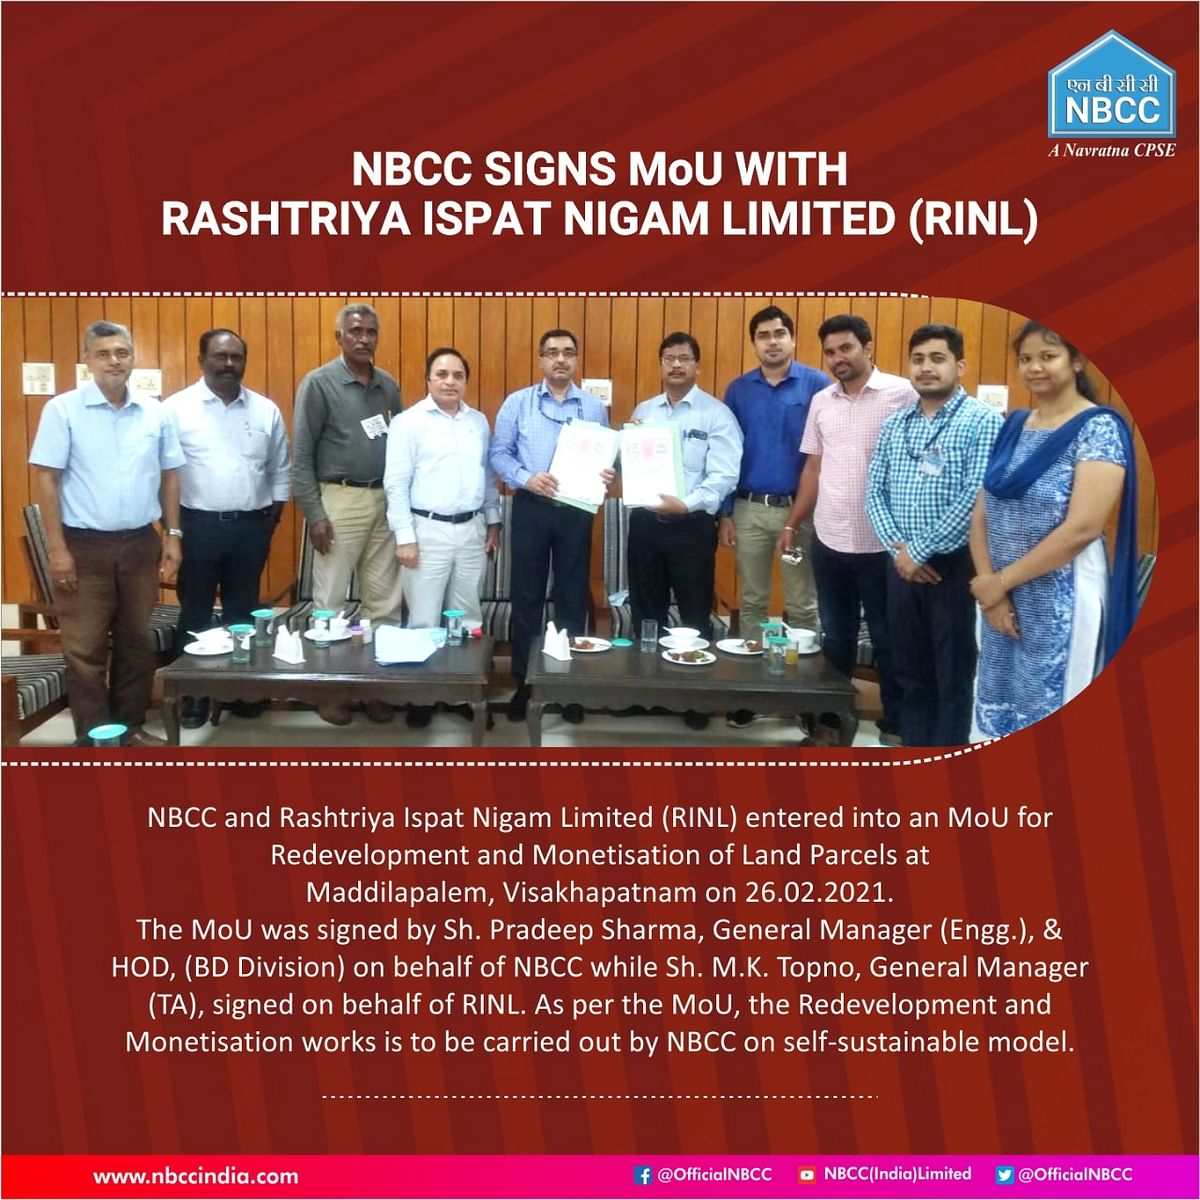 NBCC signs MoU with Rashtriya Ispat Nigam Limited (RINL)